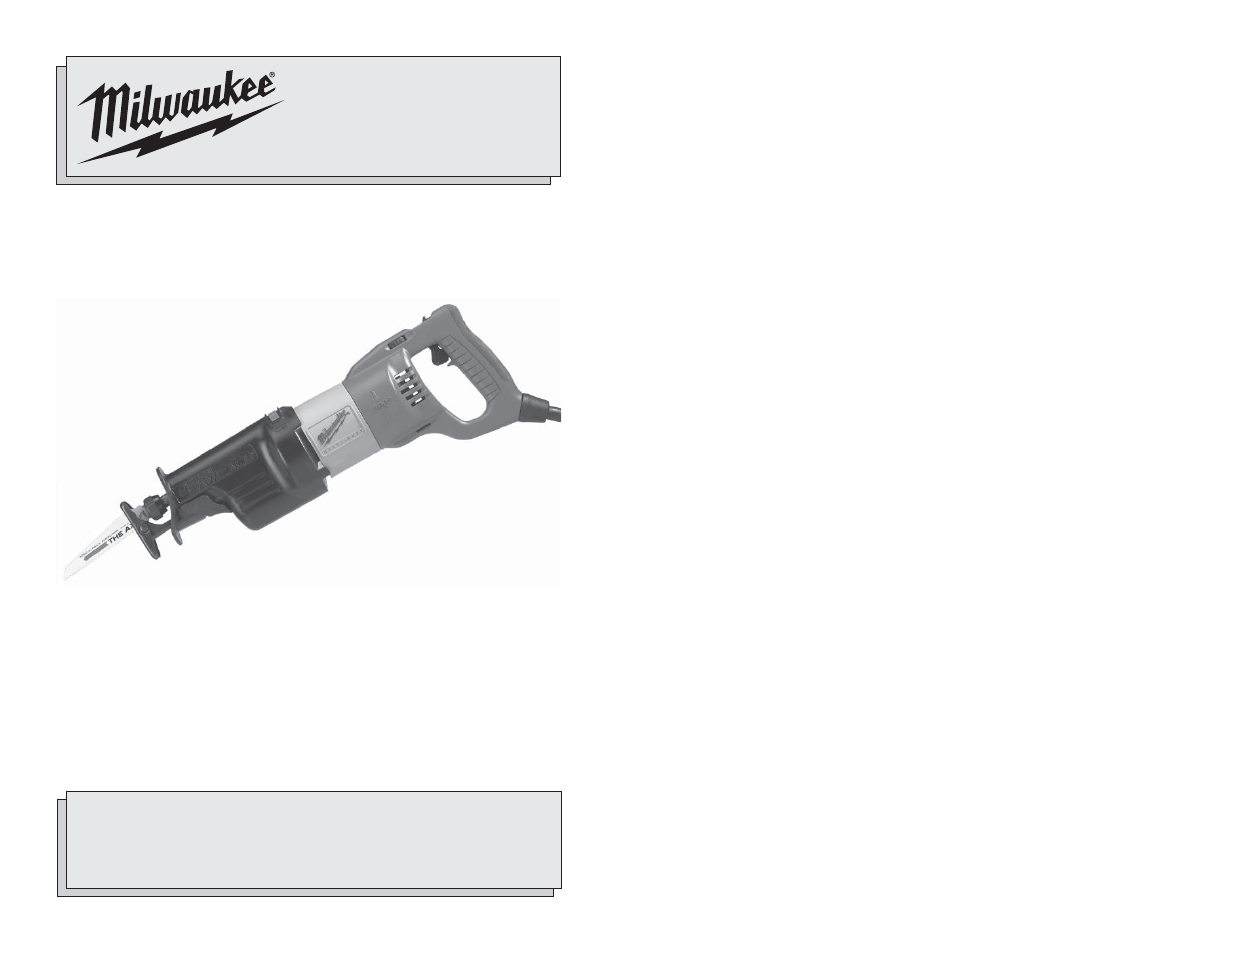 Milwaukee 6520 21 >> Milwaukee 6520 21 User Manual 21 Pages Also For 6538 21